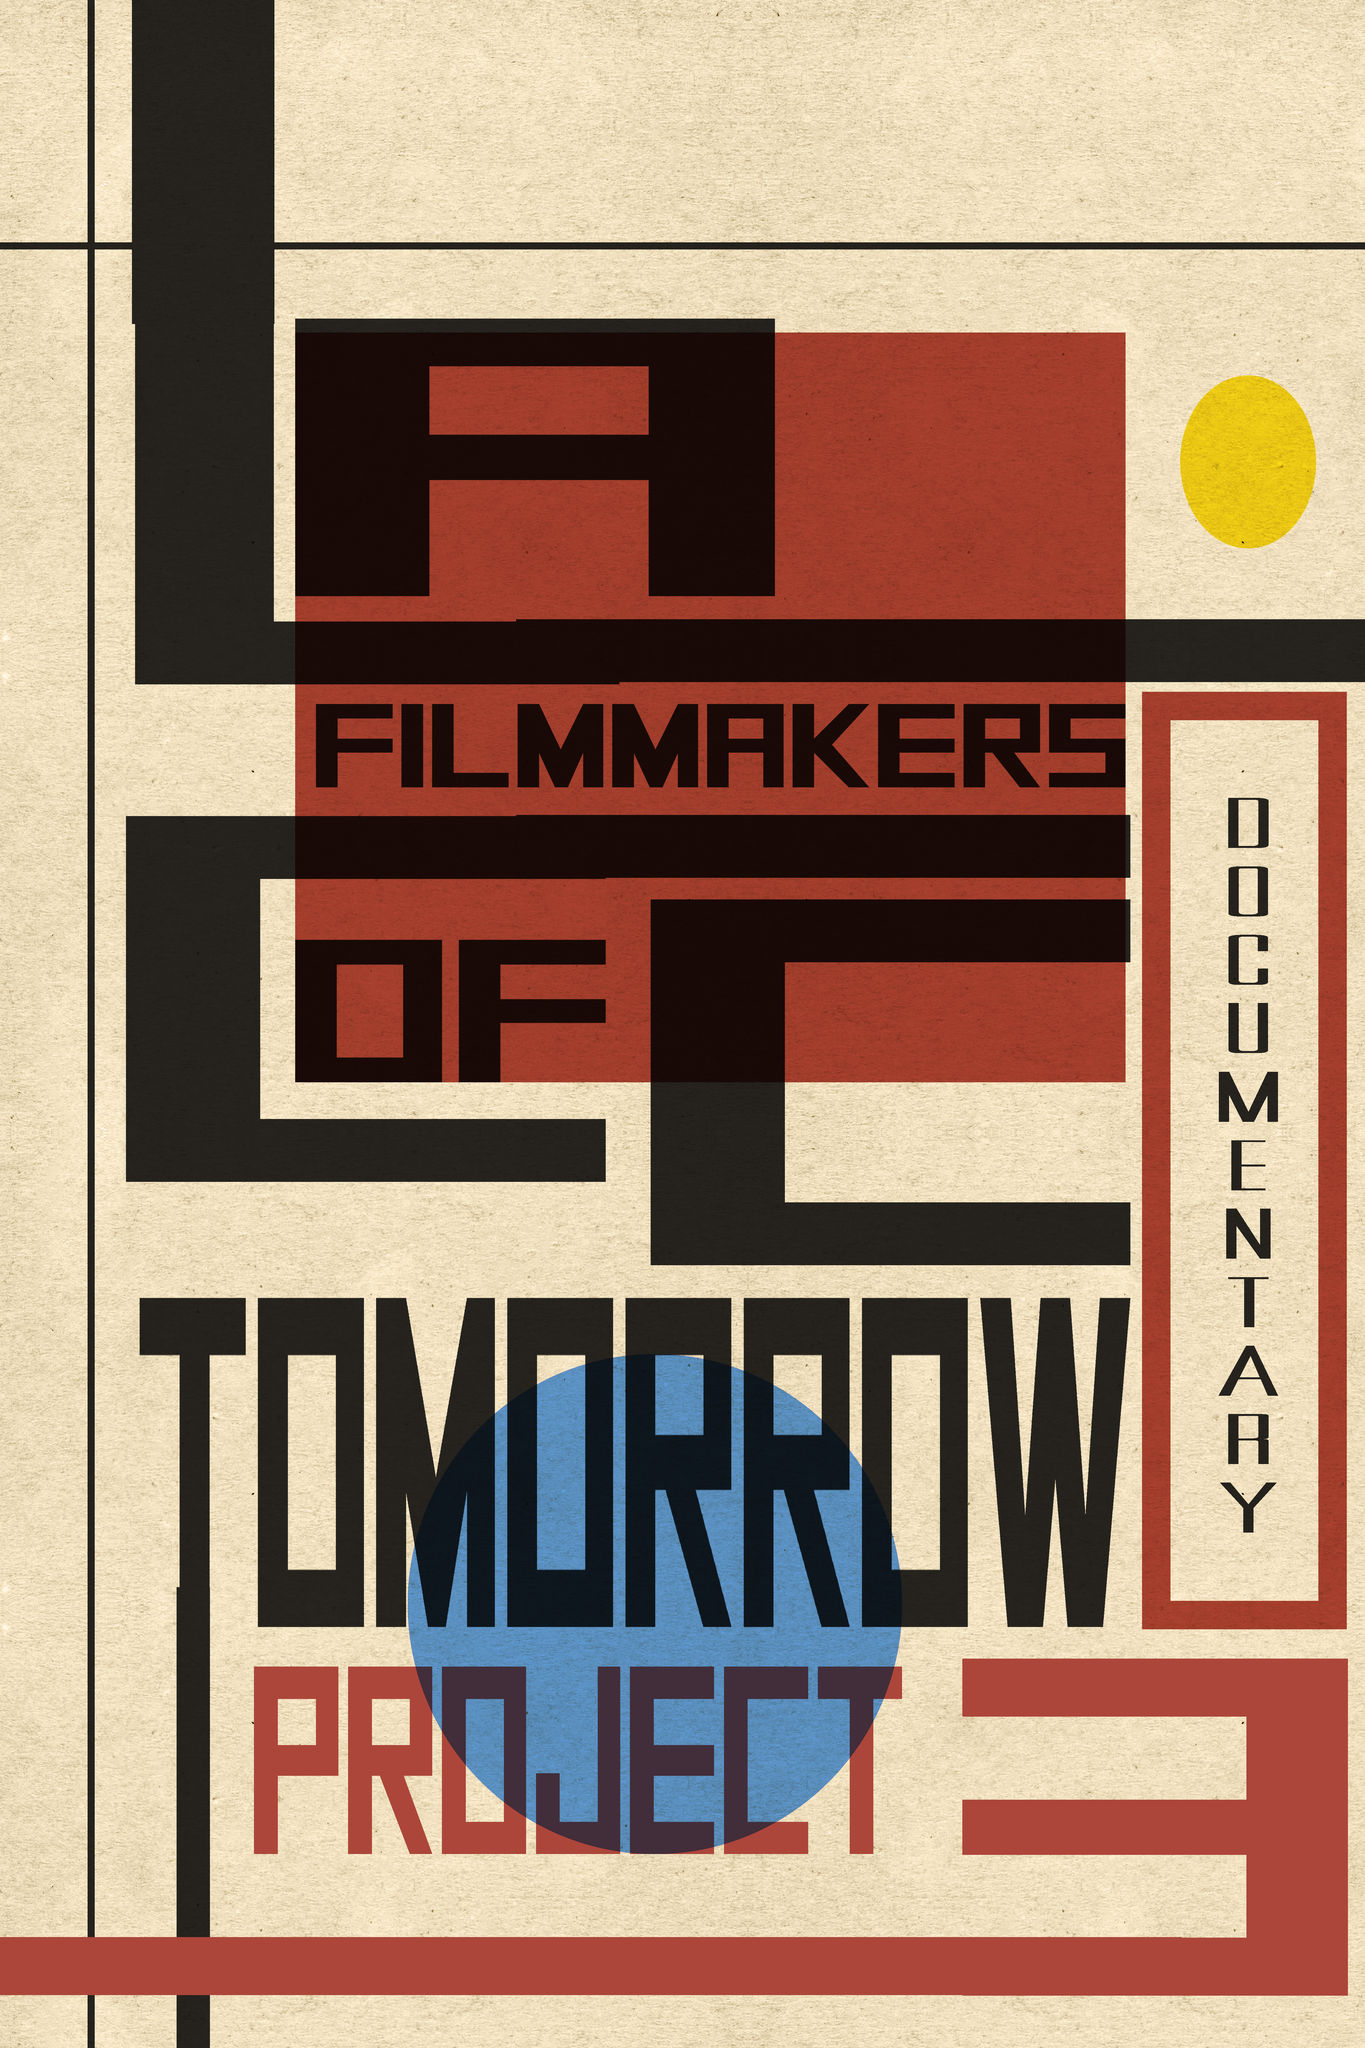 LACC Filmmakers of Tomorrow